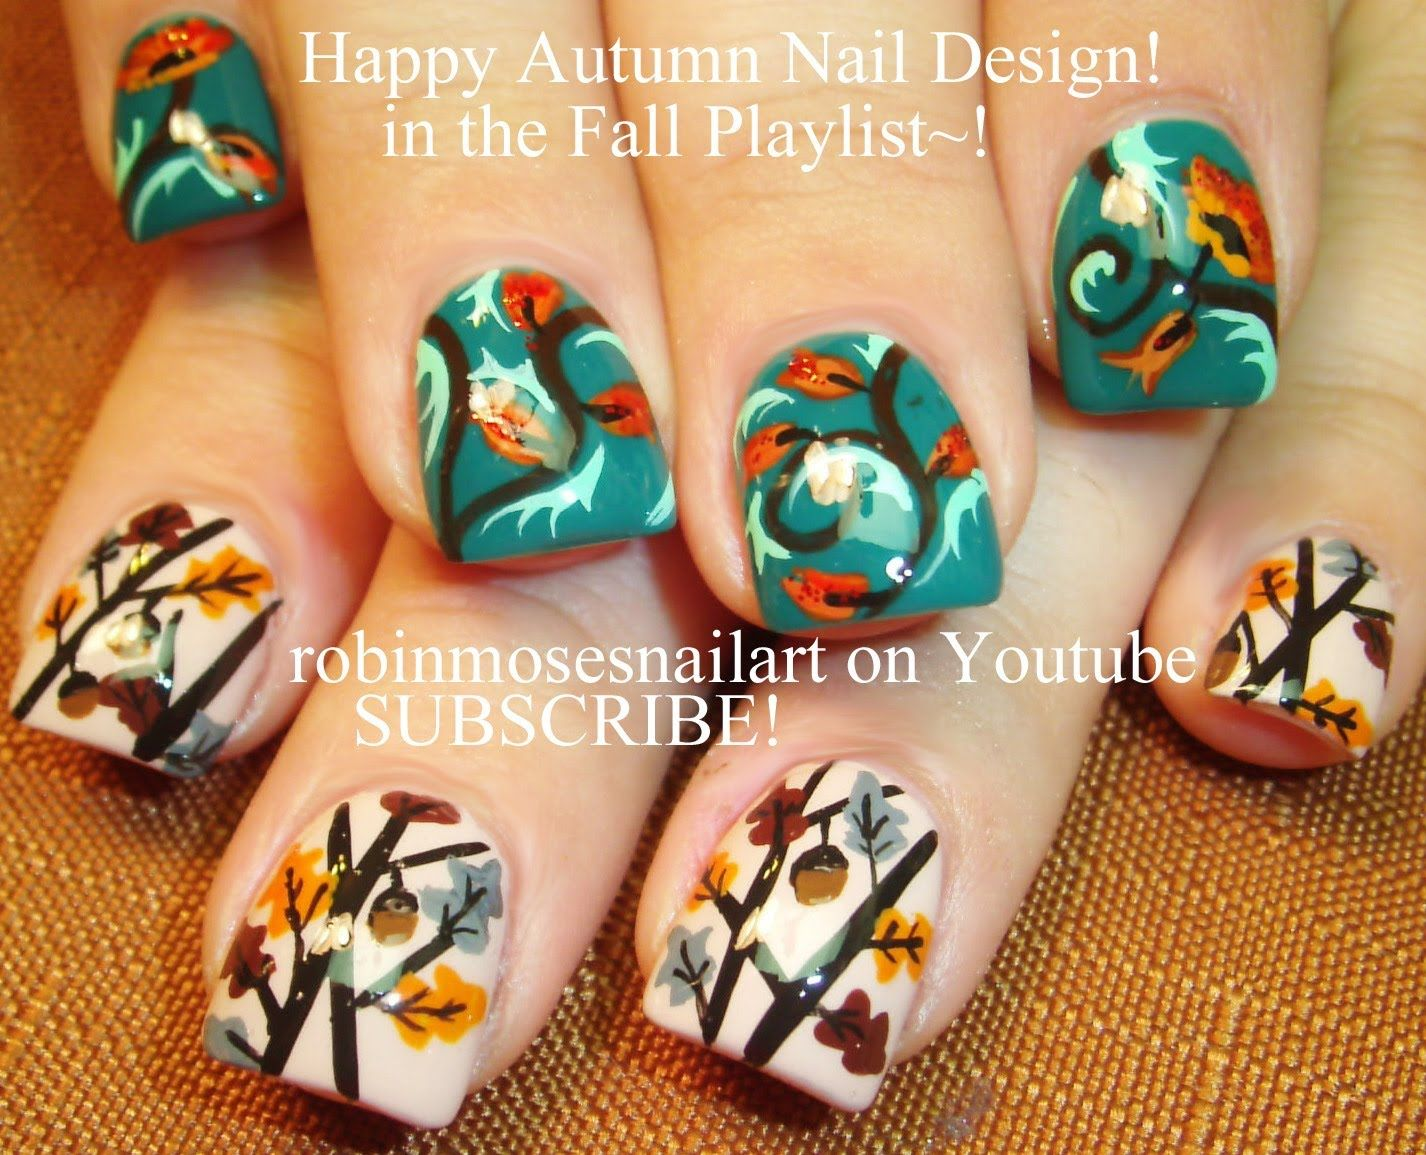 Cute fall nail art by robin moses robin moses nail art videos fall leaves fall nail art fall nails easy fall leaves fall designs autumn nails autumn nail art diy fall nail art designs tutorial robin moses solutioingenieria Choice Image